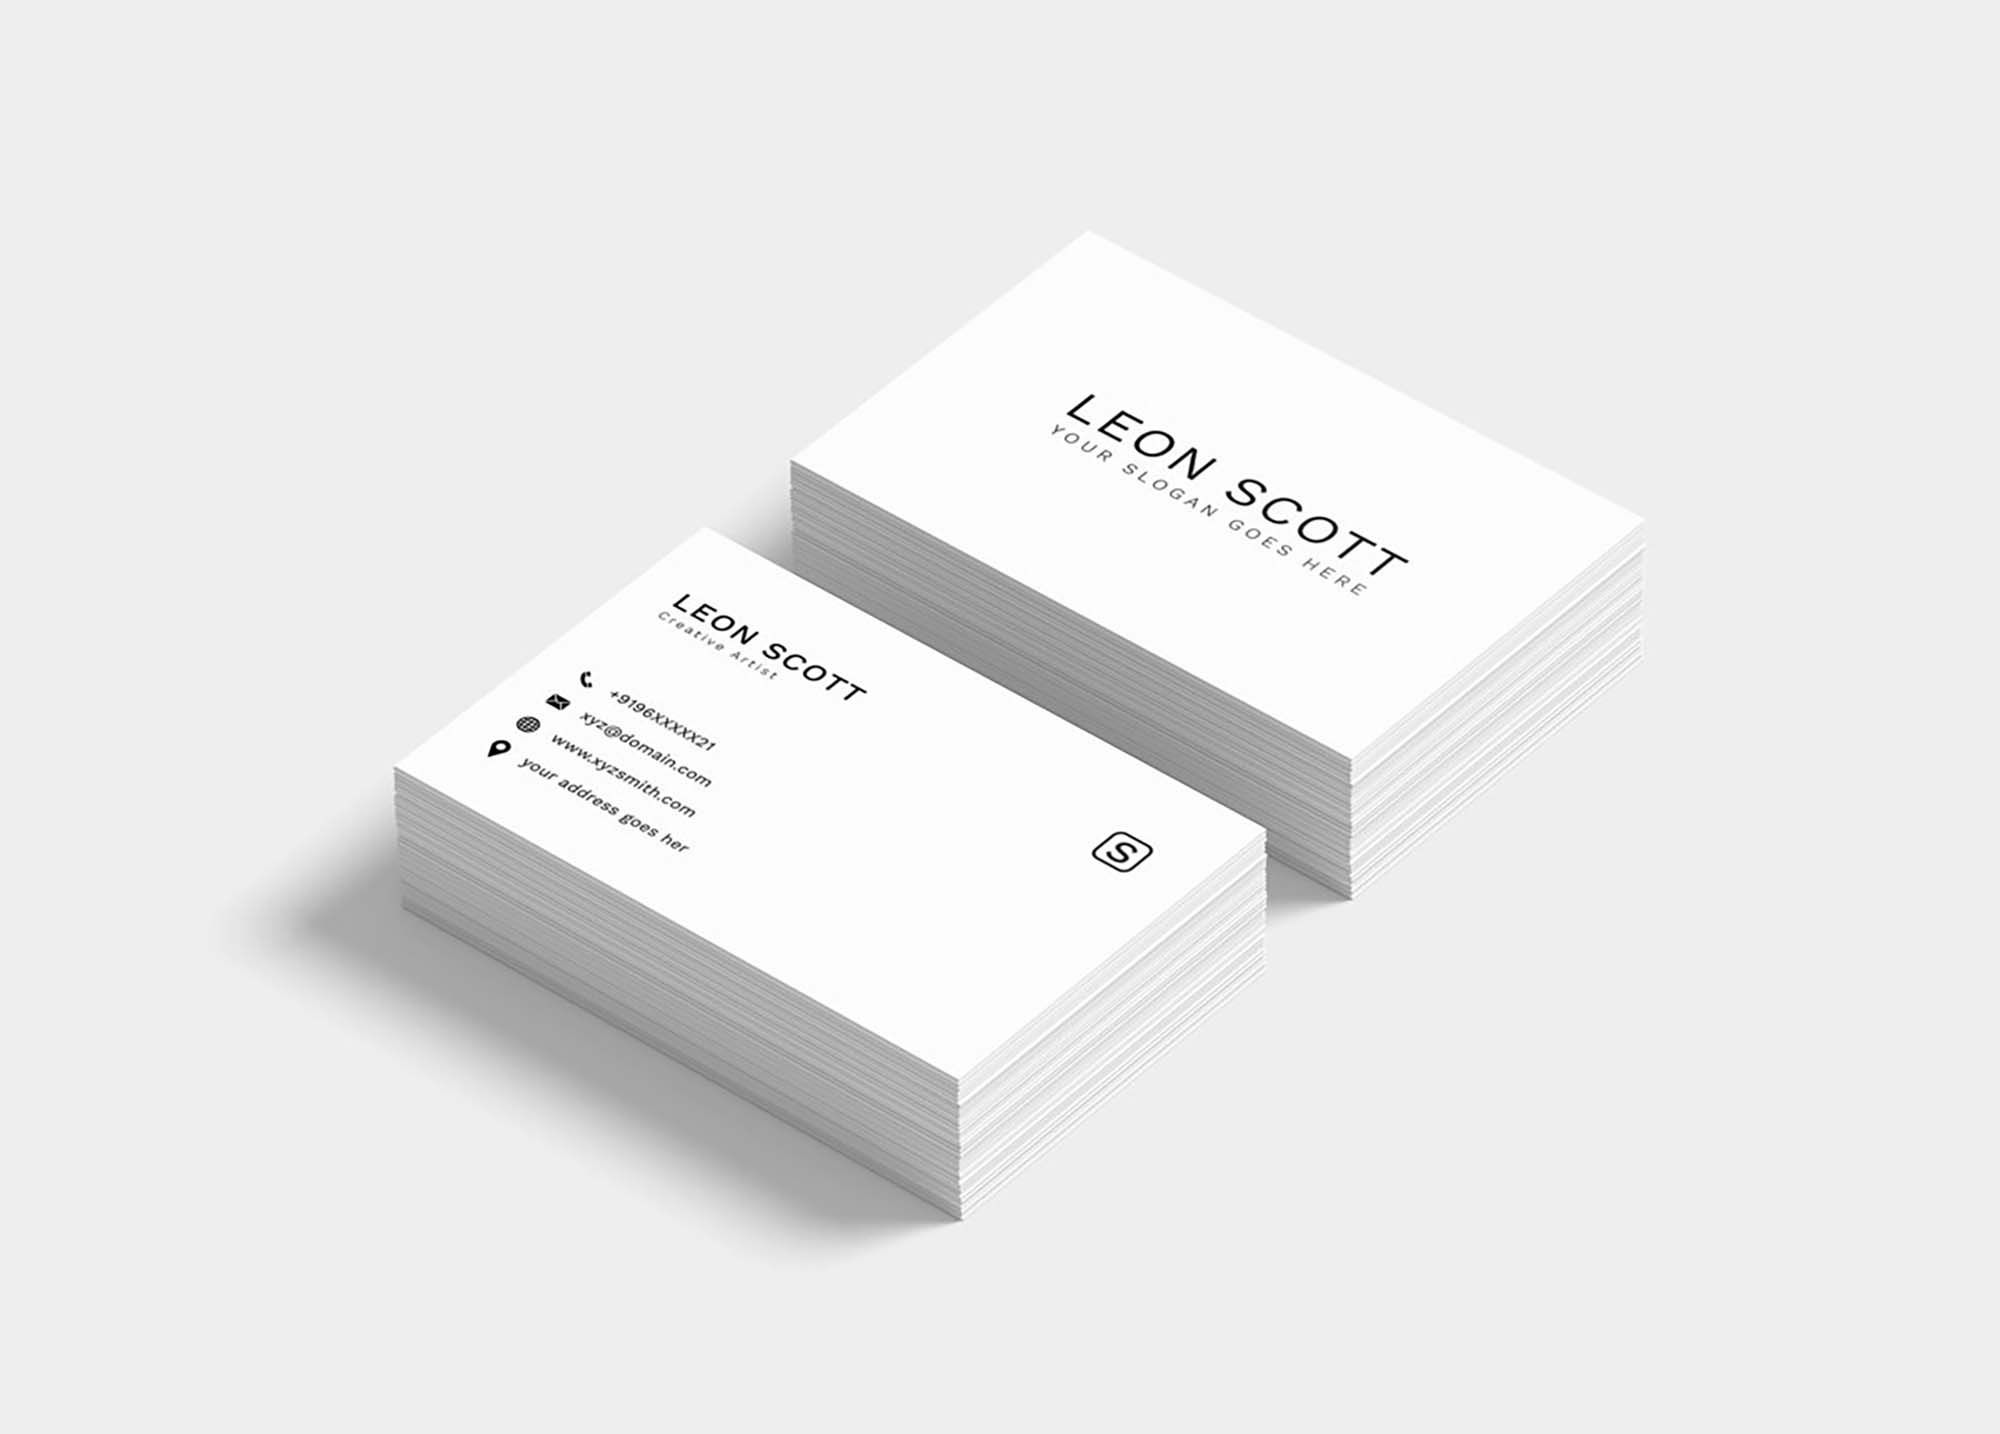 005 Unusual Simple Busines Card Design Template Free Highest Clarity  Minimalist Psd Visiting File DownloadFull